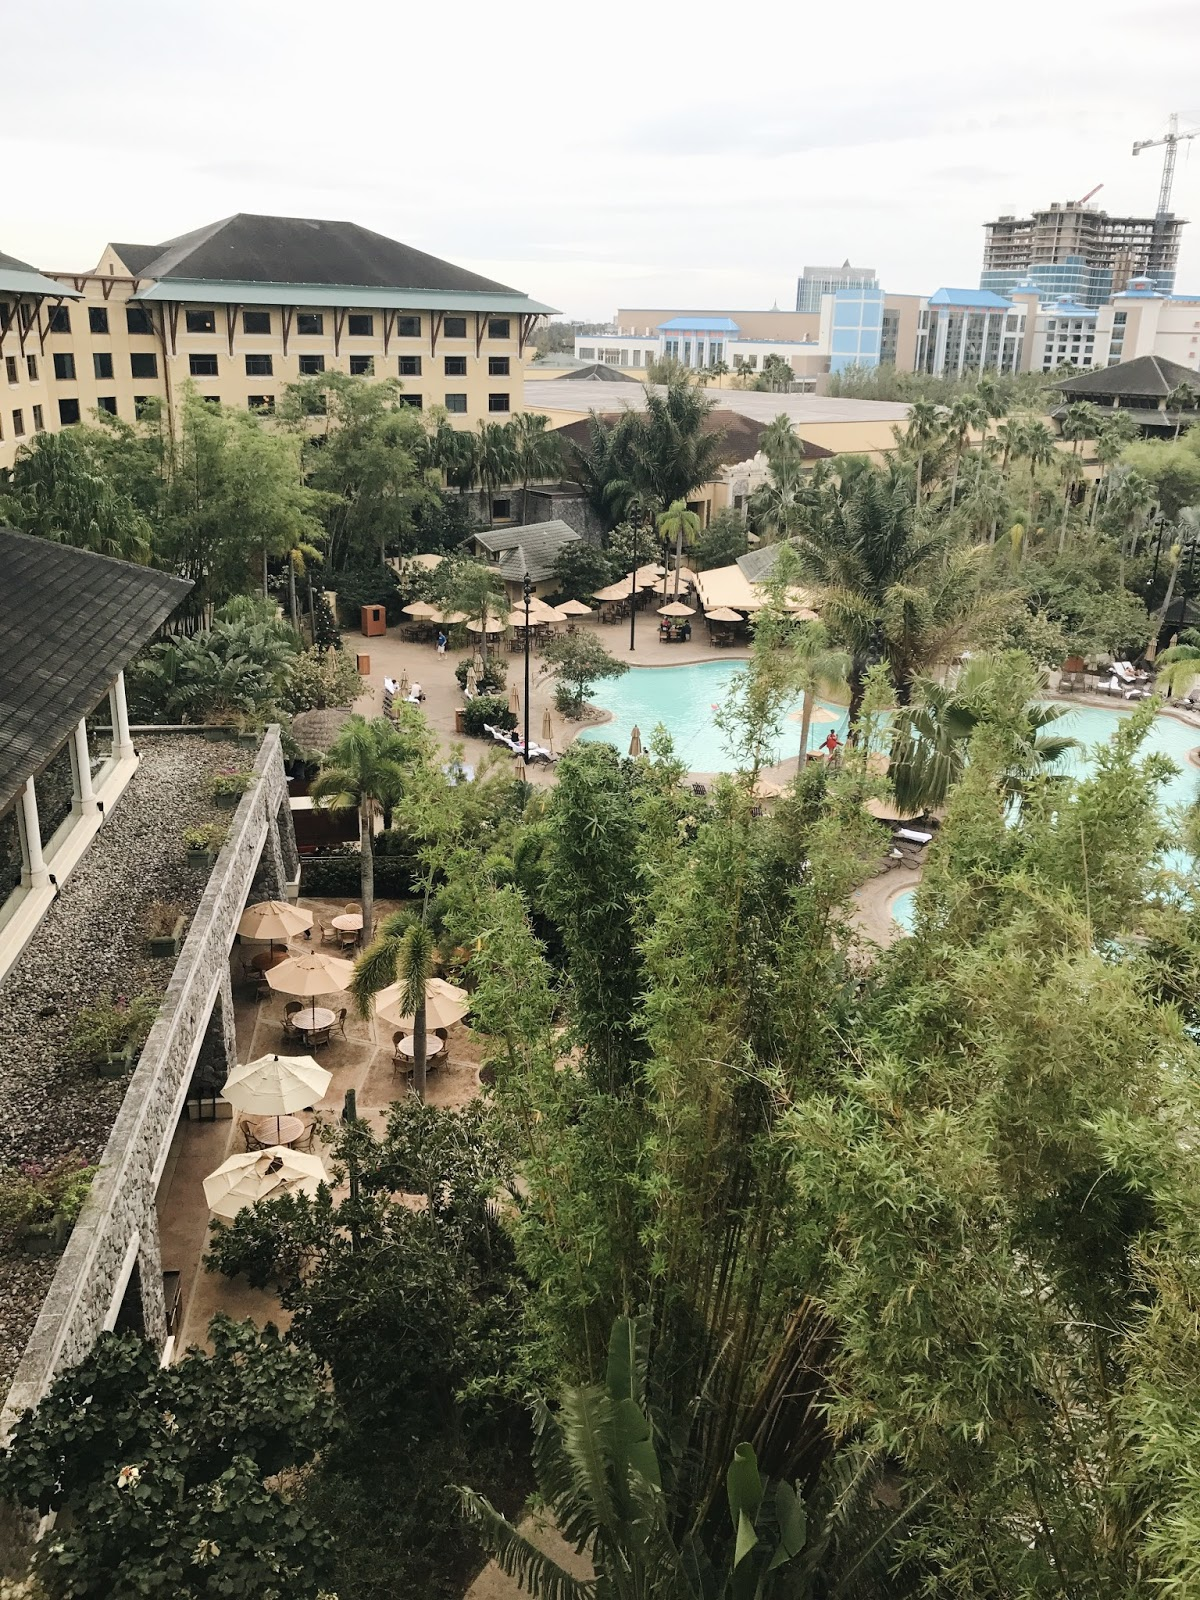 A Weekend at Loews Royal Pacific Resort With Universal Orlando